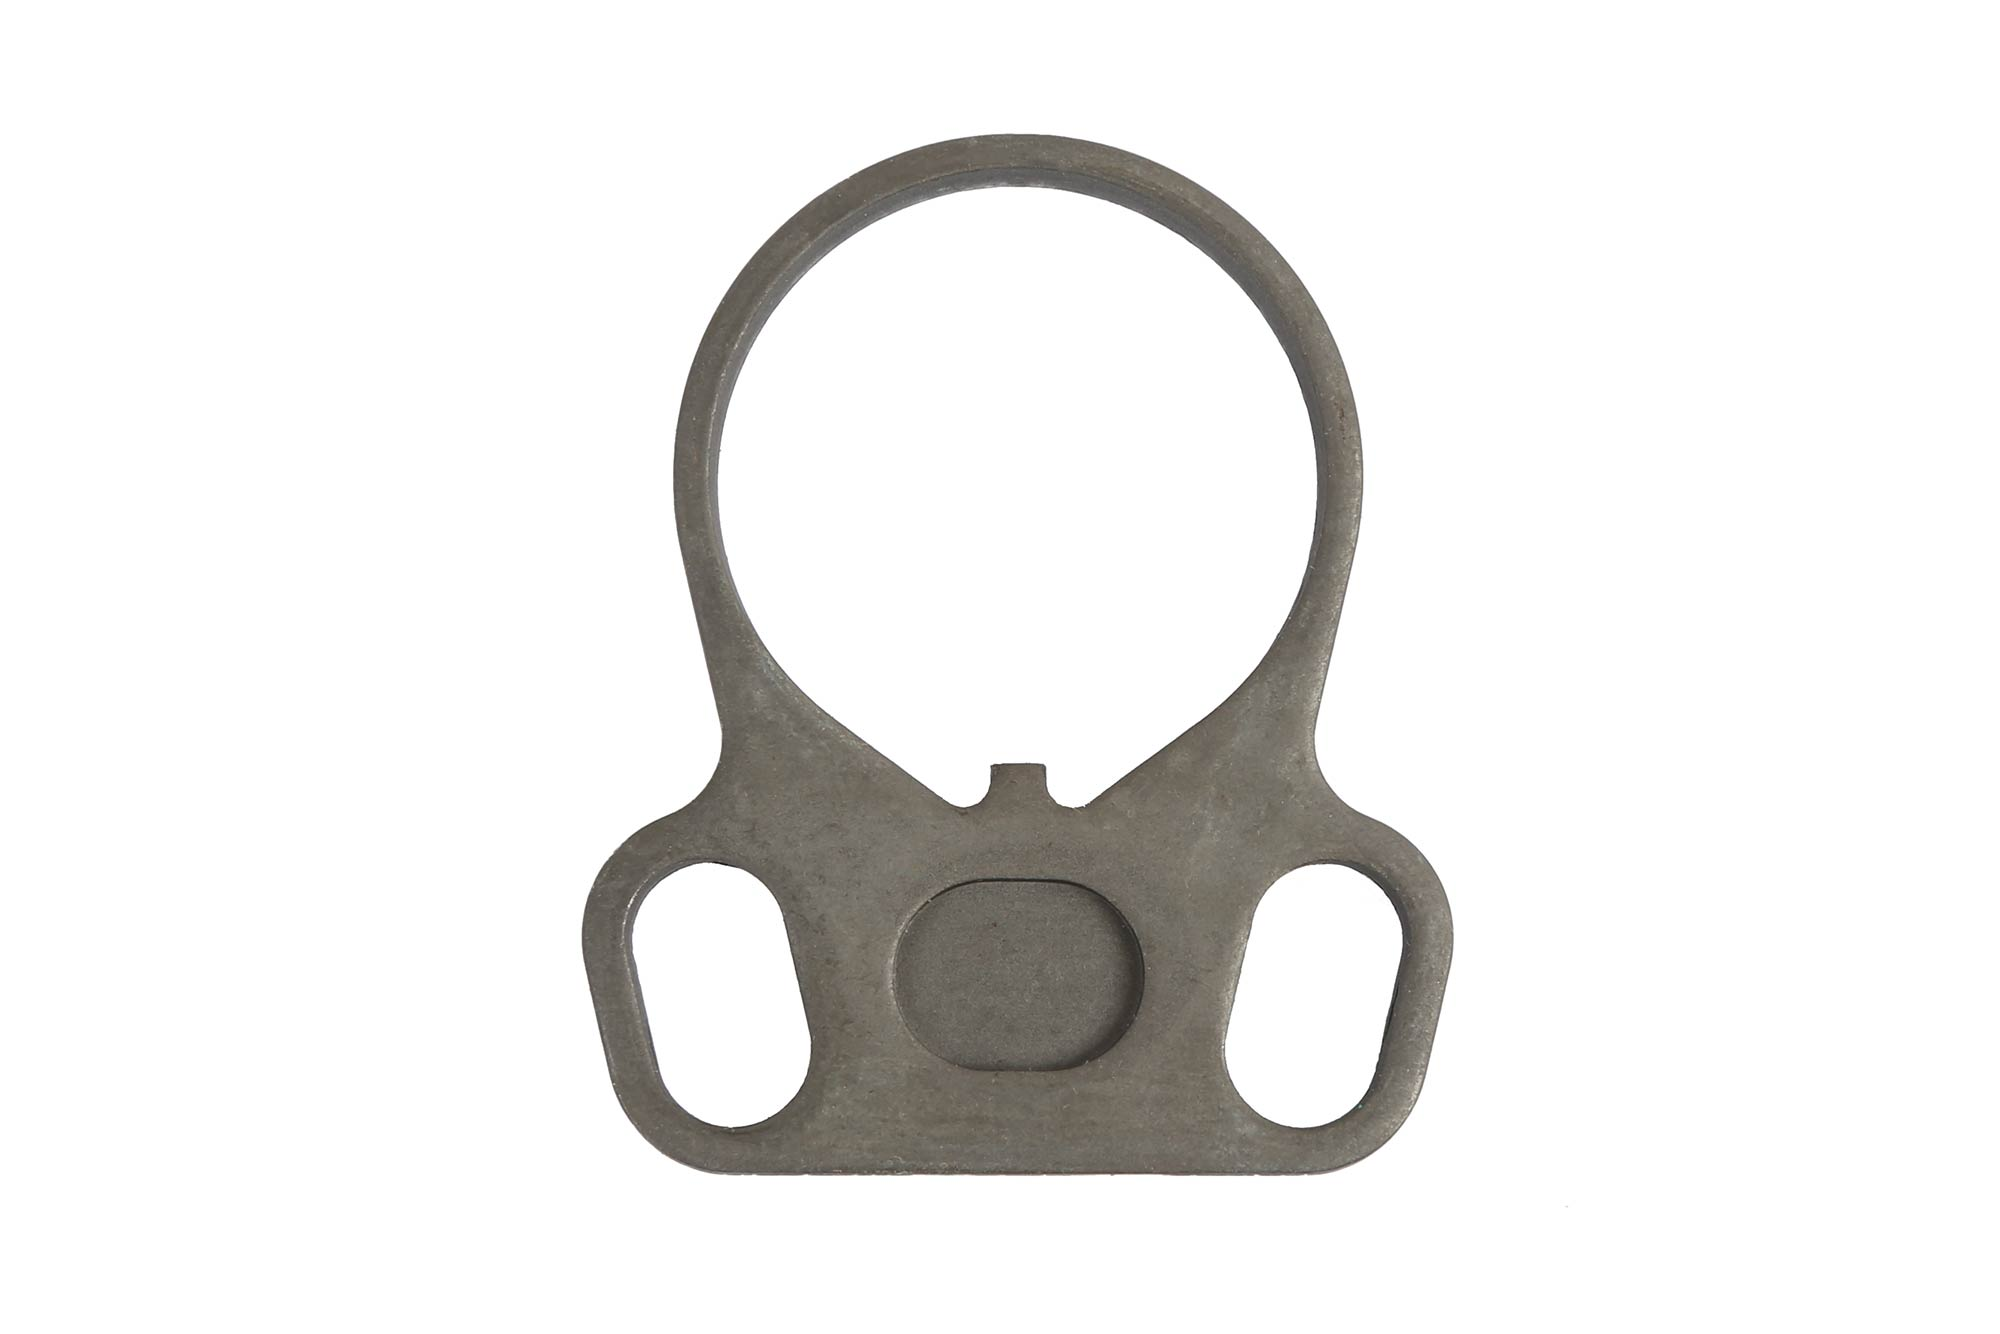 Anderson Manufacturing AR-15 Lower Receiver End Plate - Ambi Sling Point